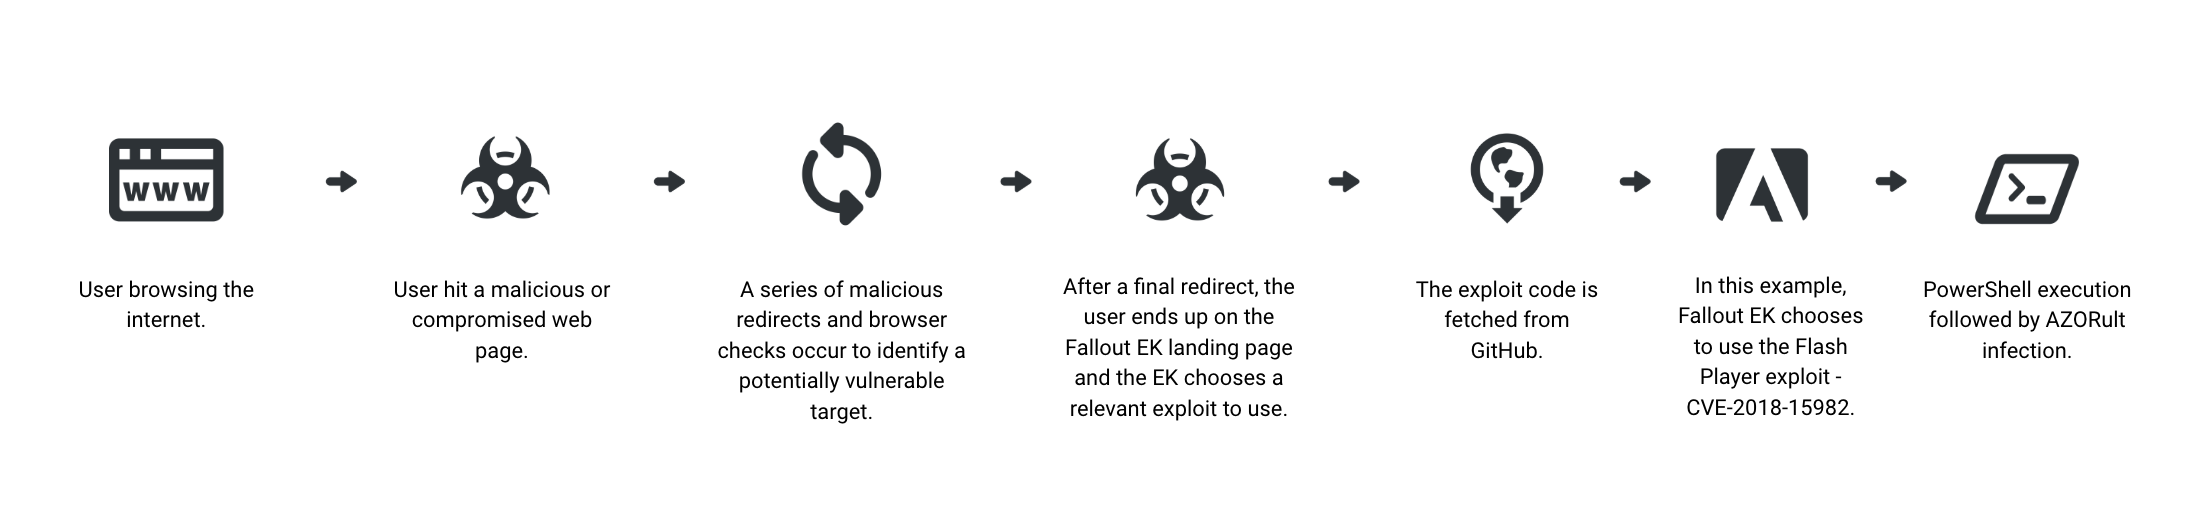 Watch Where You Browse - The Fallout Exploit Kit Stays Active